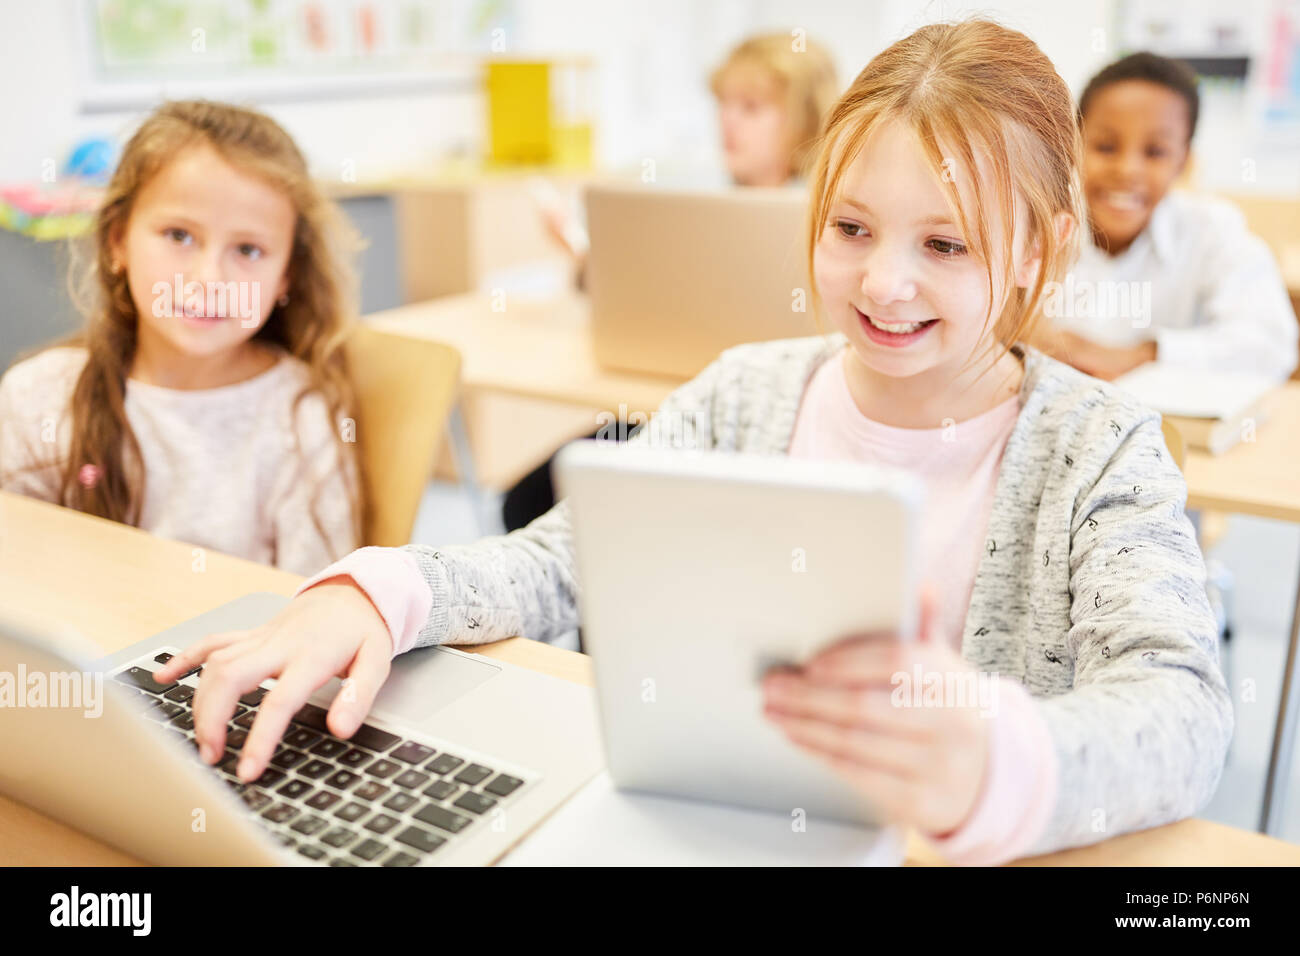 Kids in computer science learn lessons with laptop and tablet of